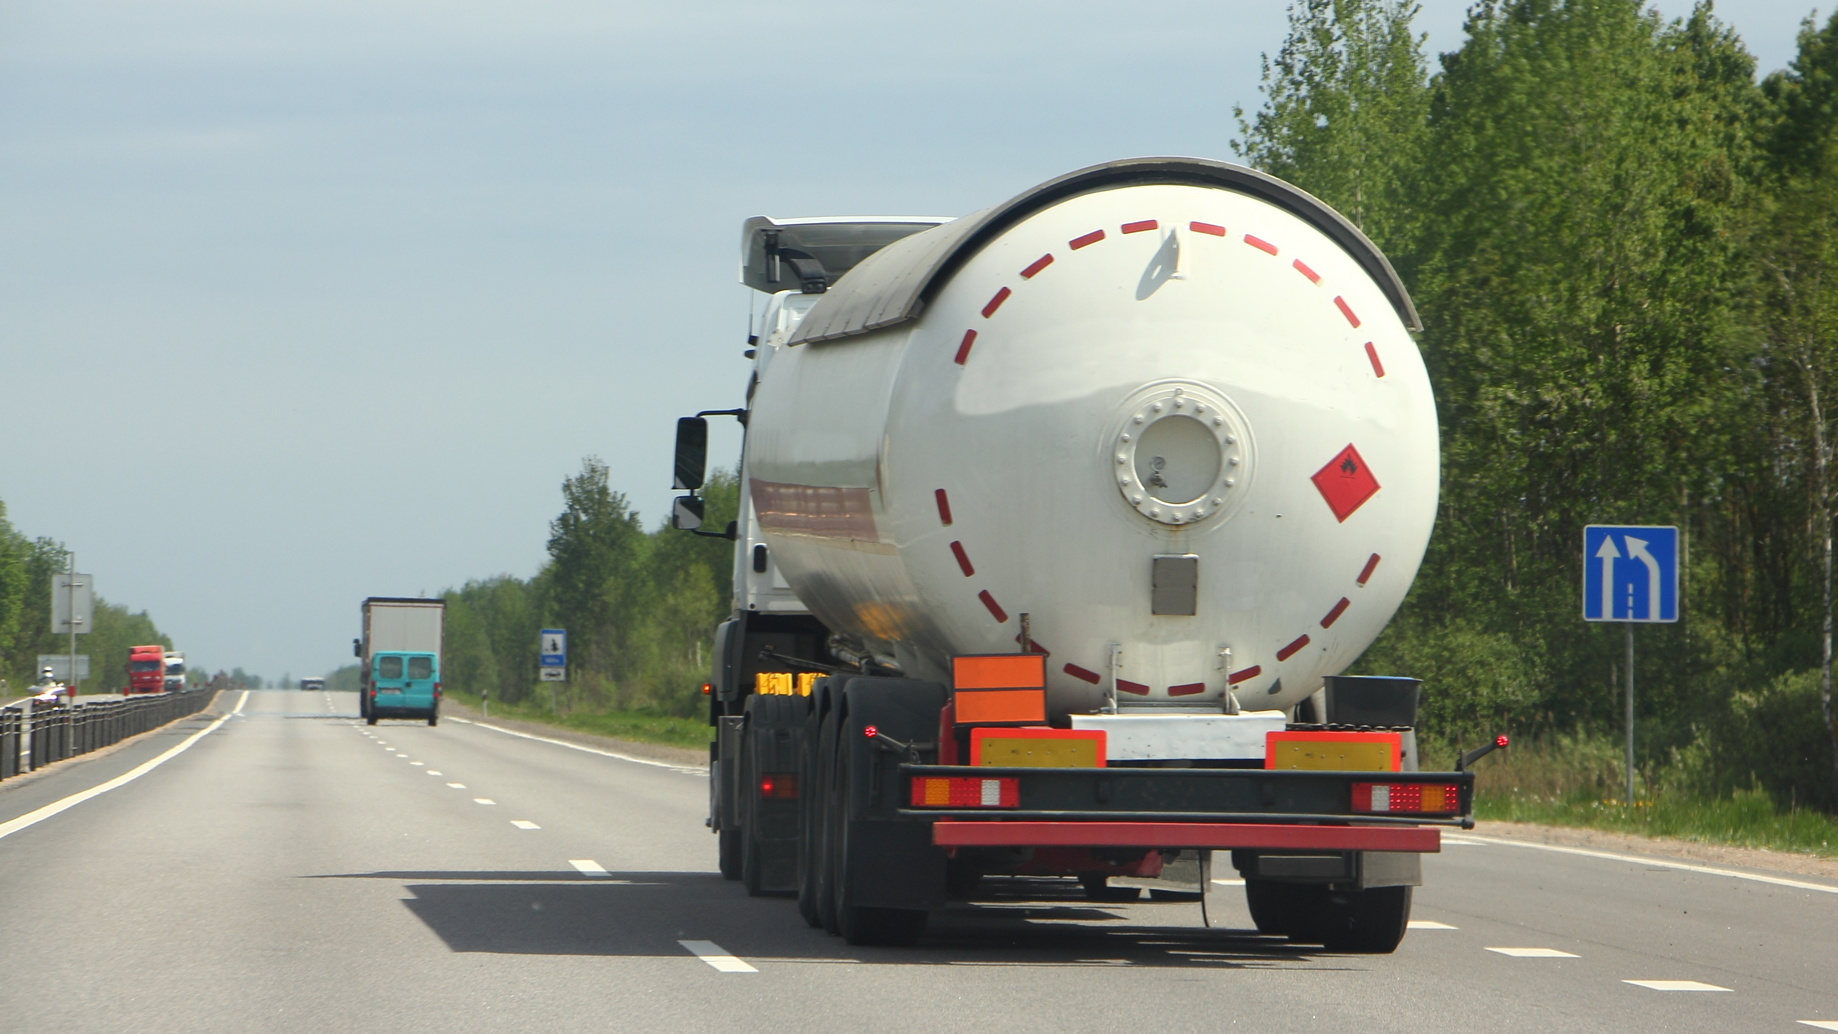 Semi truck with propane tank moving on asphalt road on a summer day - ADR dangerous cargo, side rear view